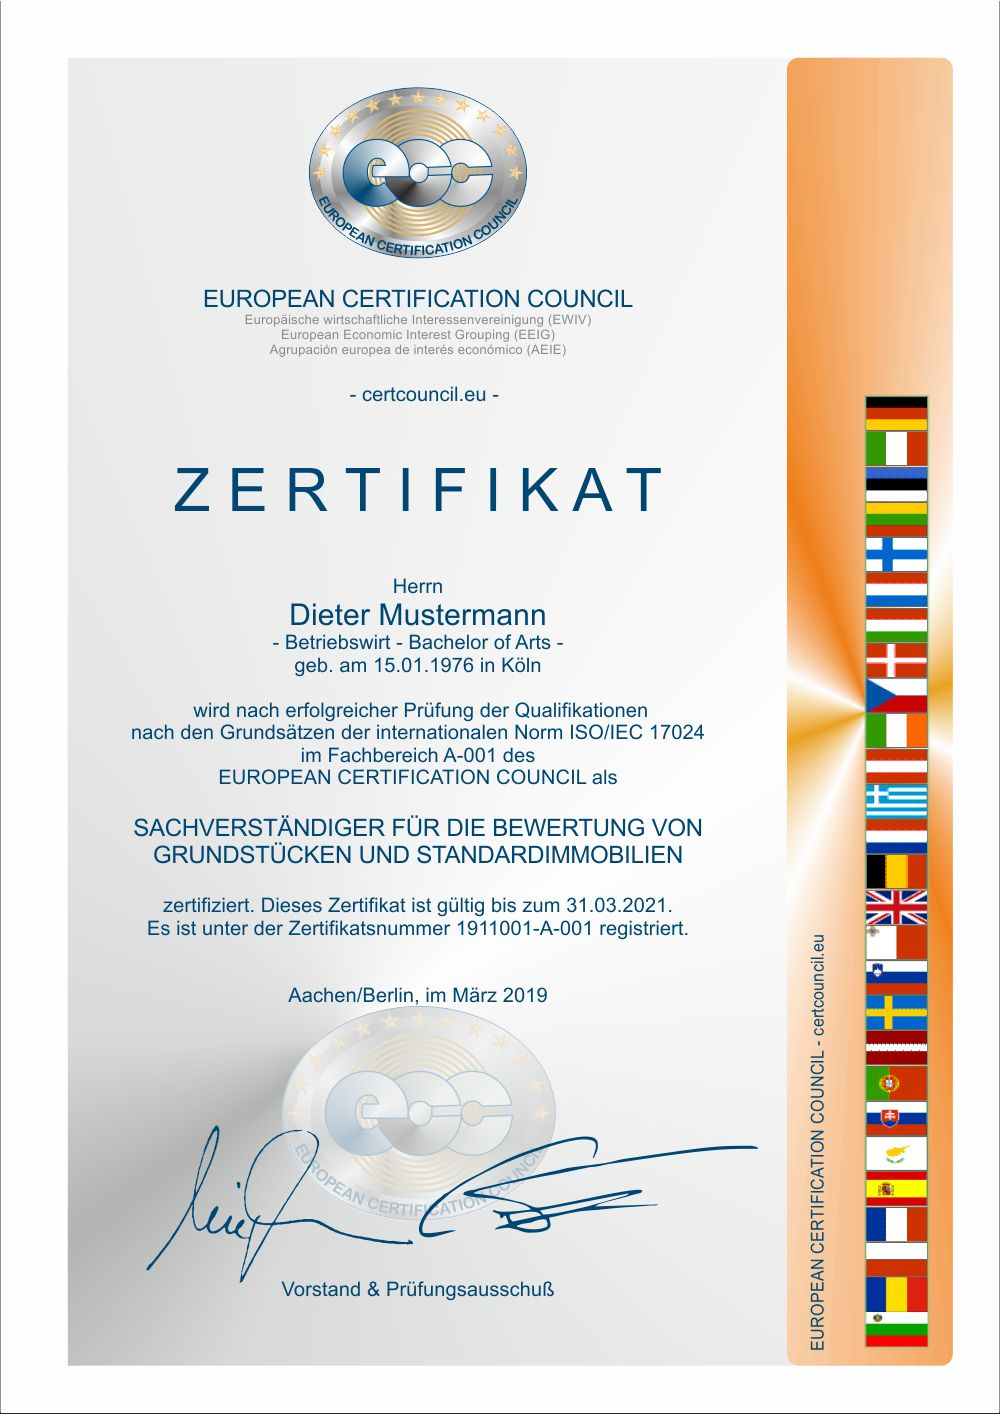 Zertifikat EUROPEAN CERTIFICATION COUNCIL